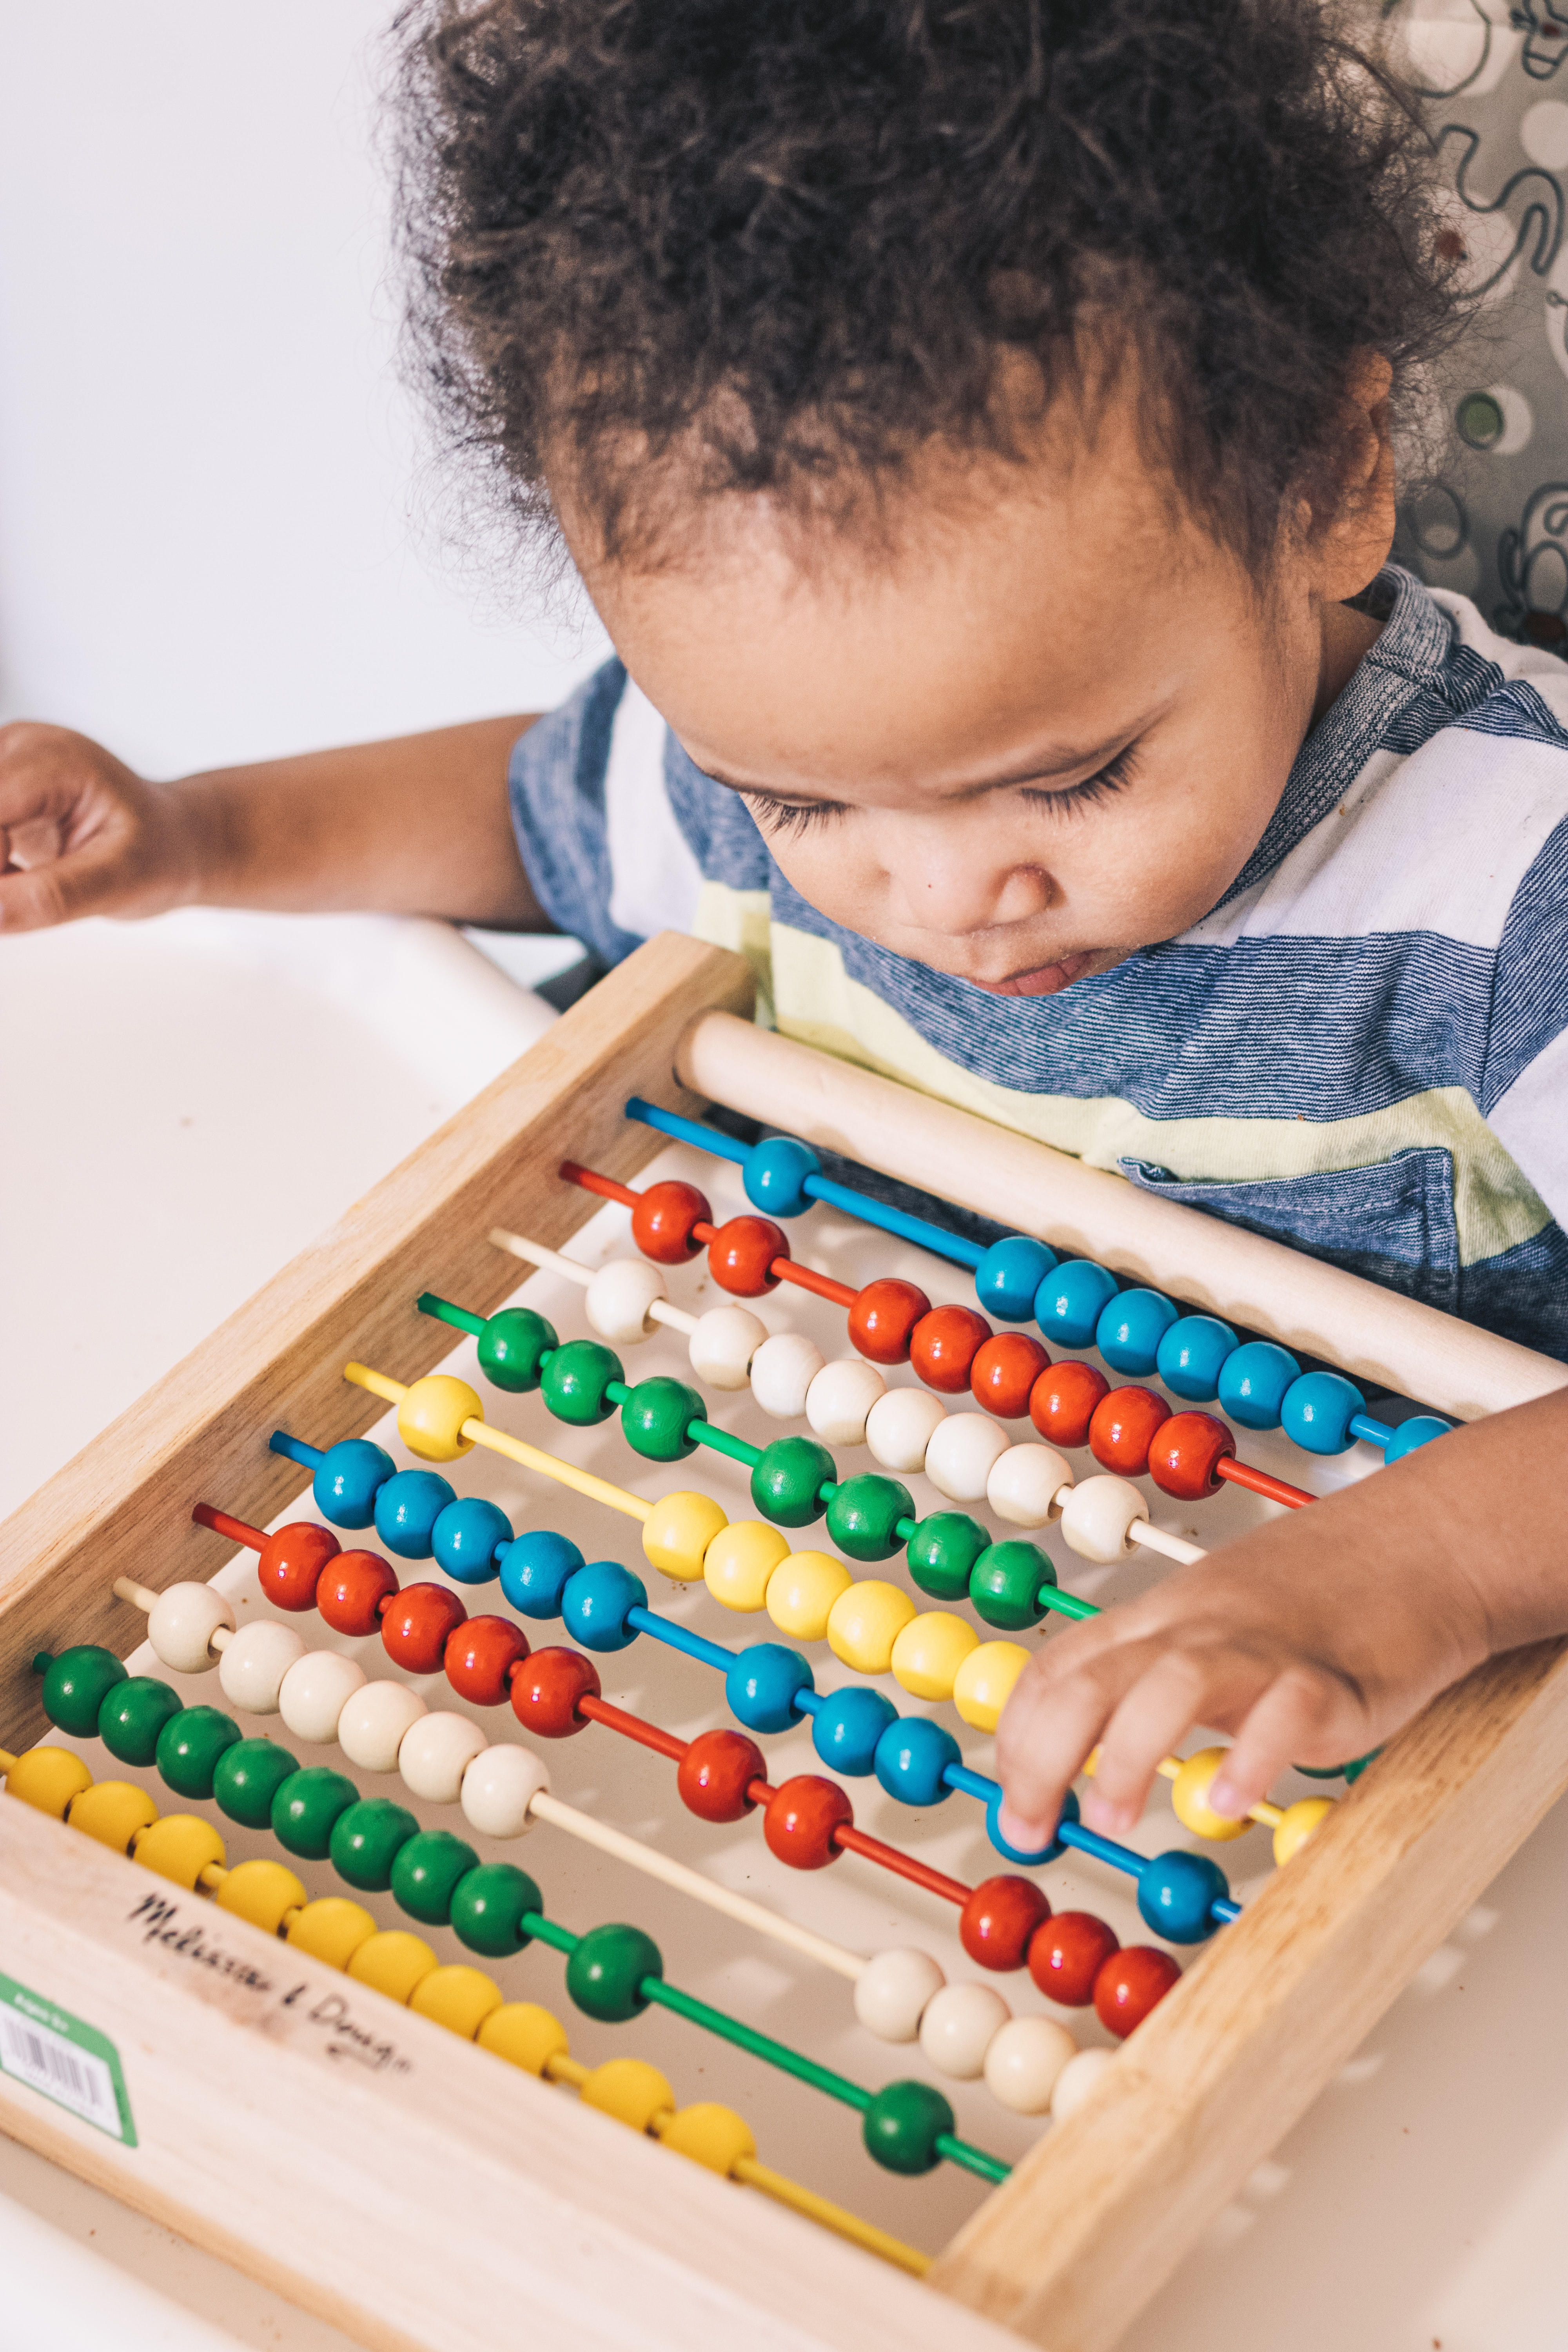 Toddler playing with abacus.